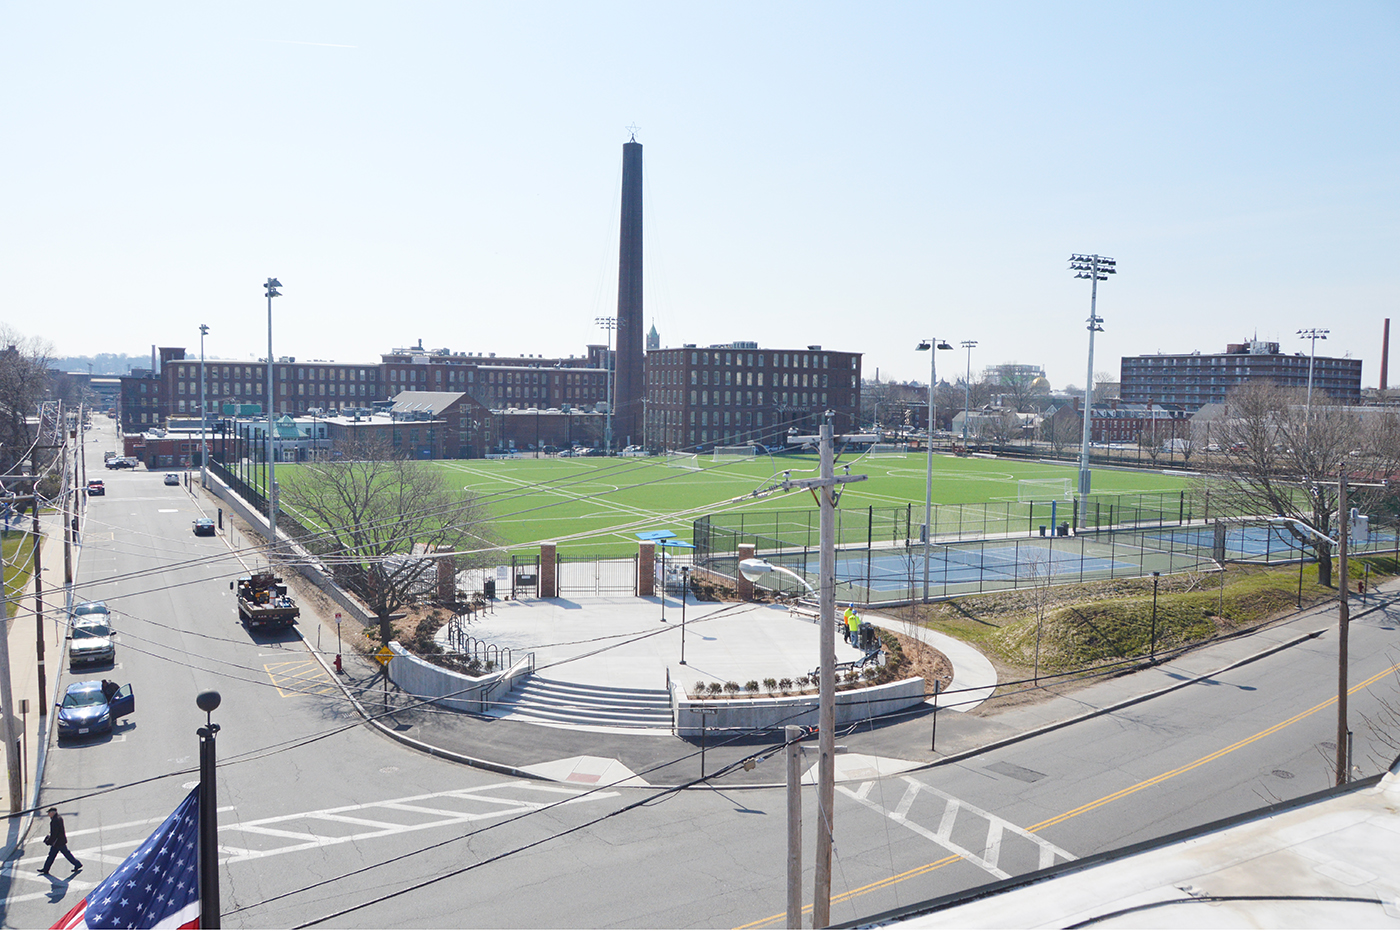 UMass Lowell Campus Recreation Complex